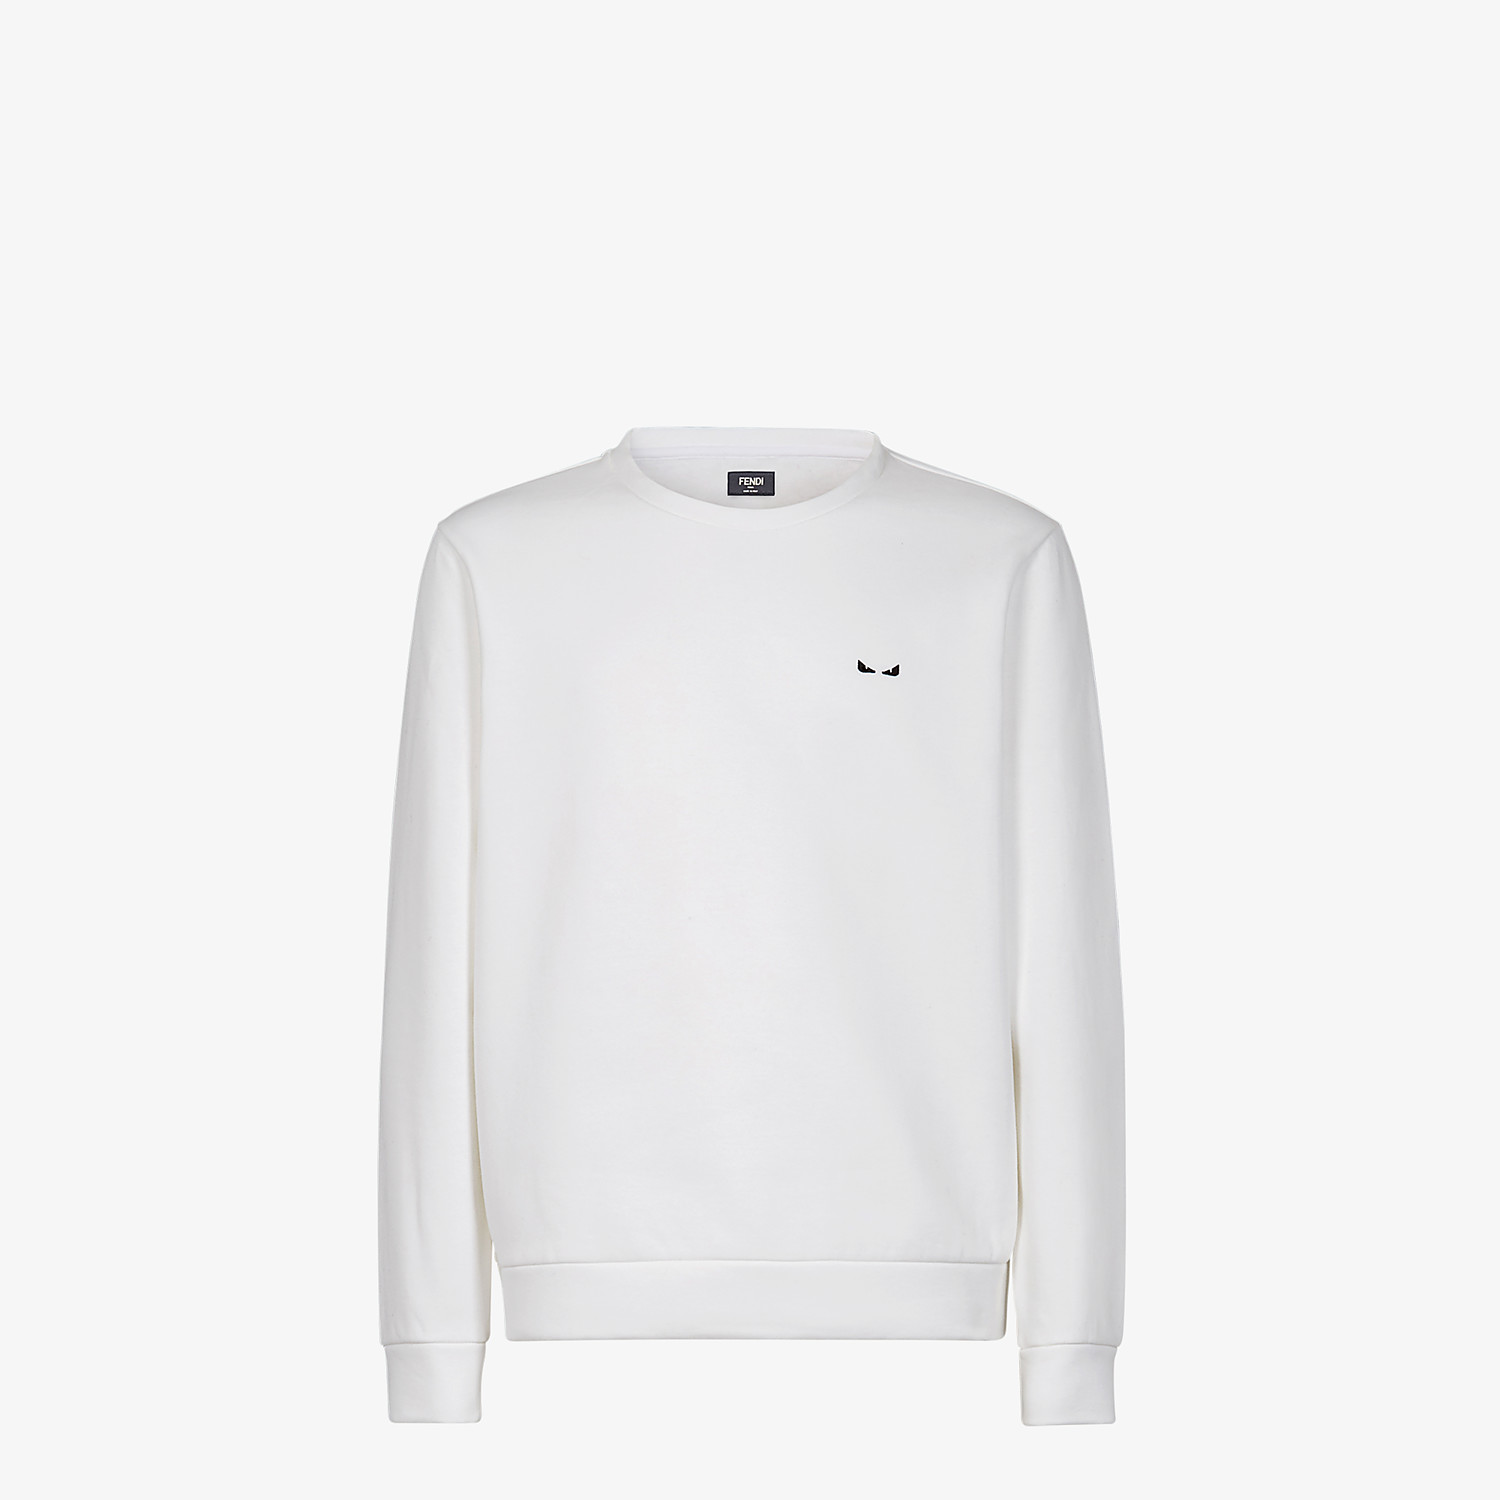 FENDI SWEATSHIRT - White cotton sweater - view 1 detail